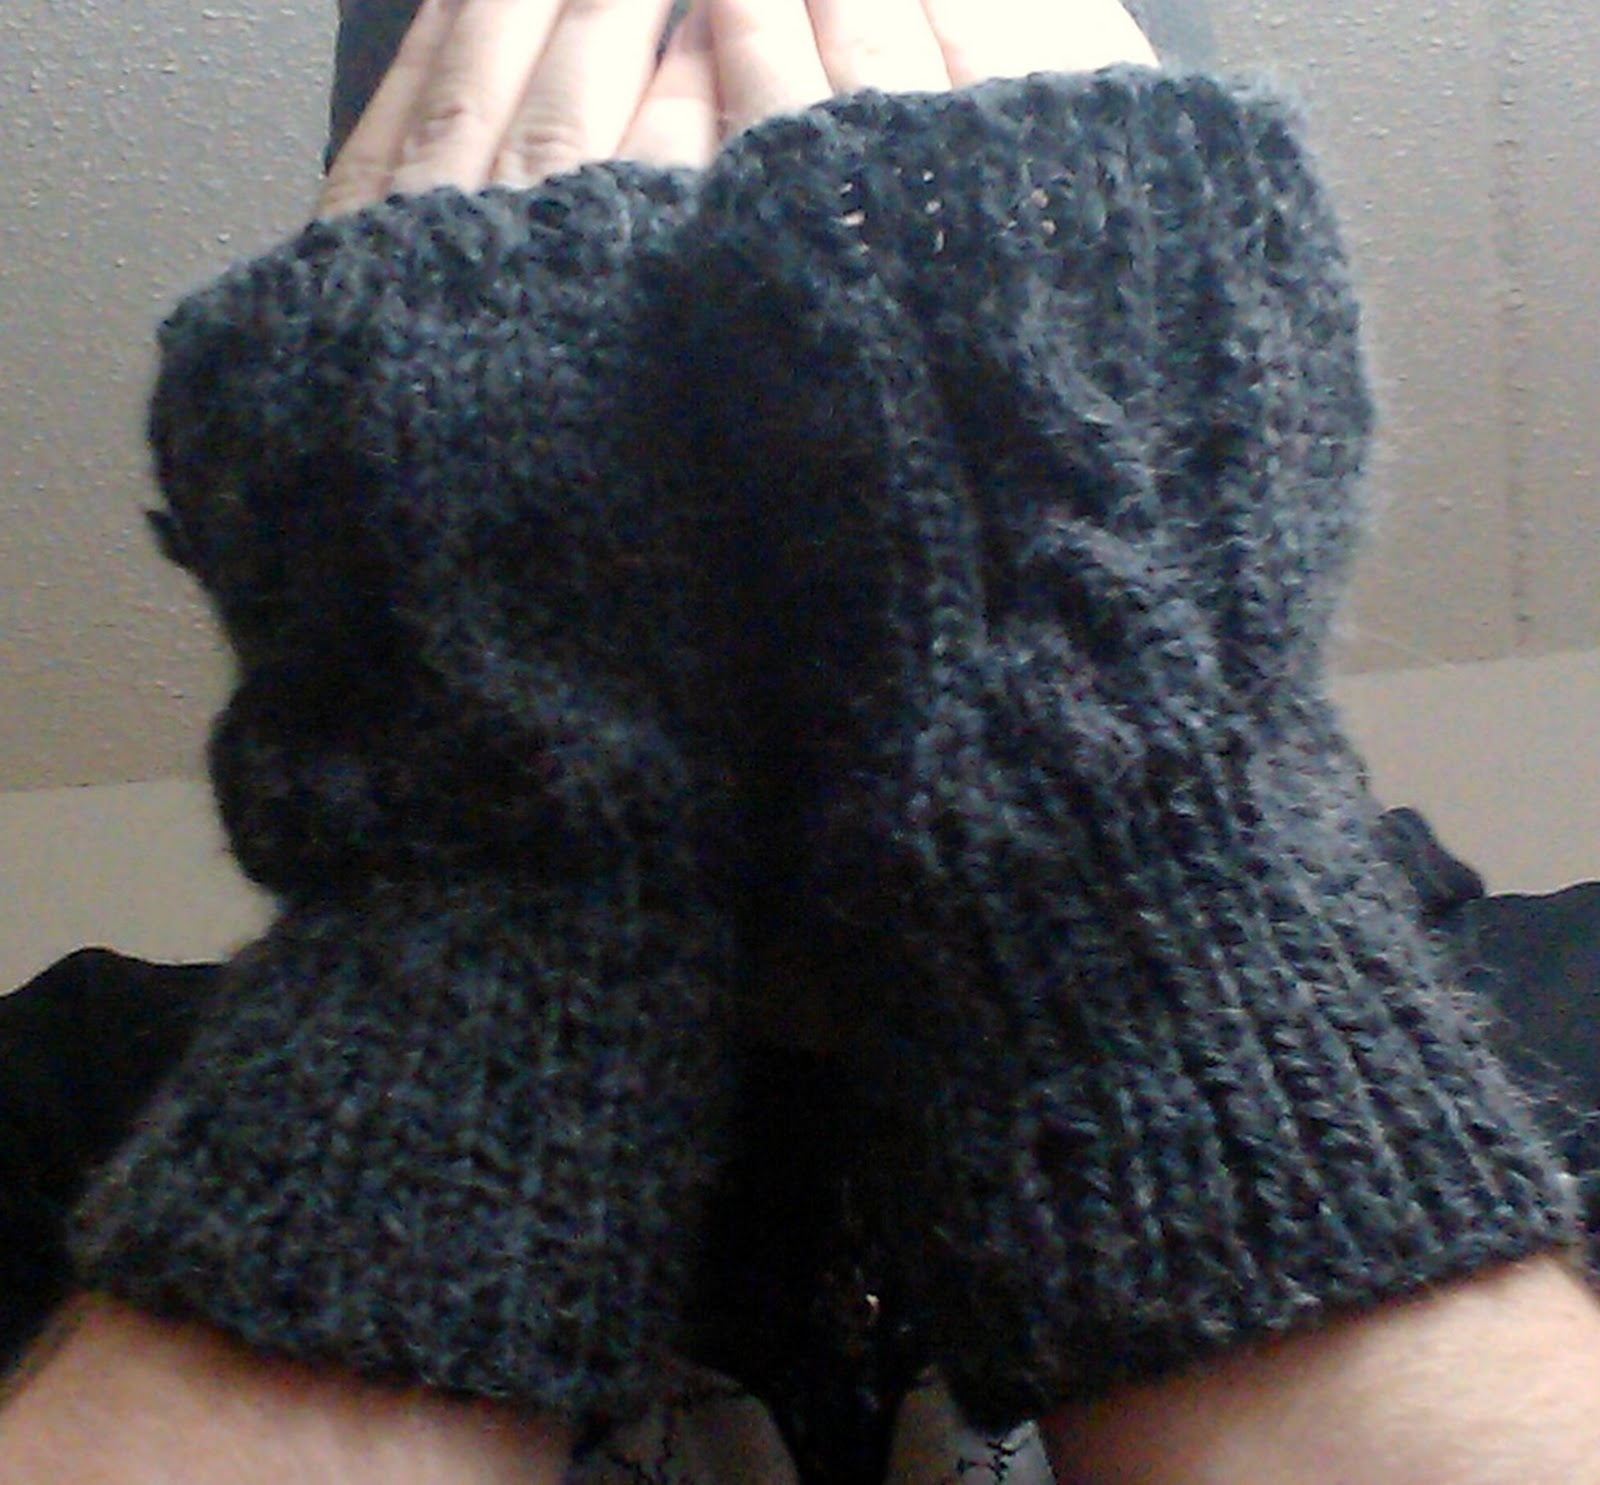 Mens Fingerless Gloves Knitting Pattern Free : No Idle Hands: Mens Glove Pattern